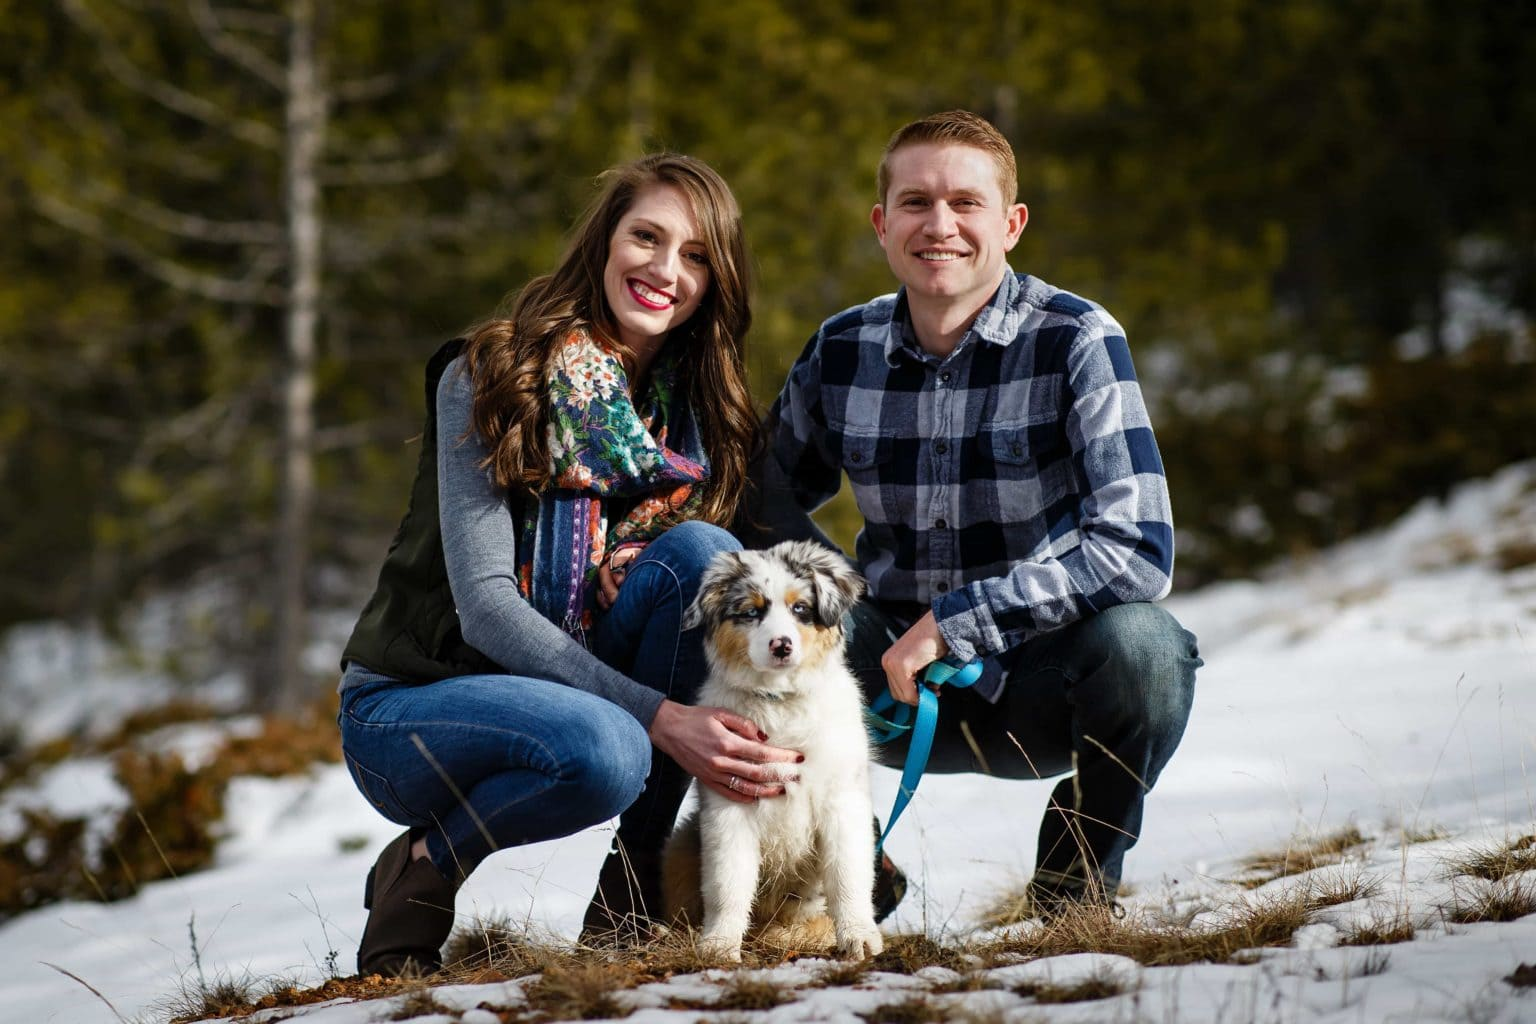 7 Tips To Successfully Include Your Dog In Engagement Photos